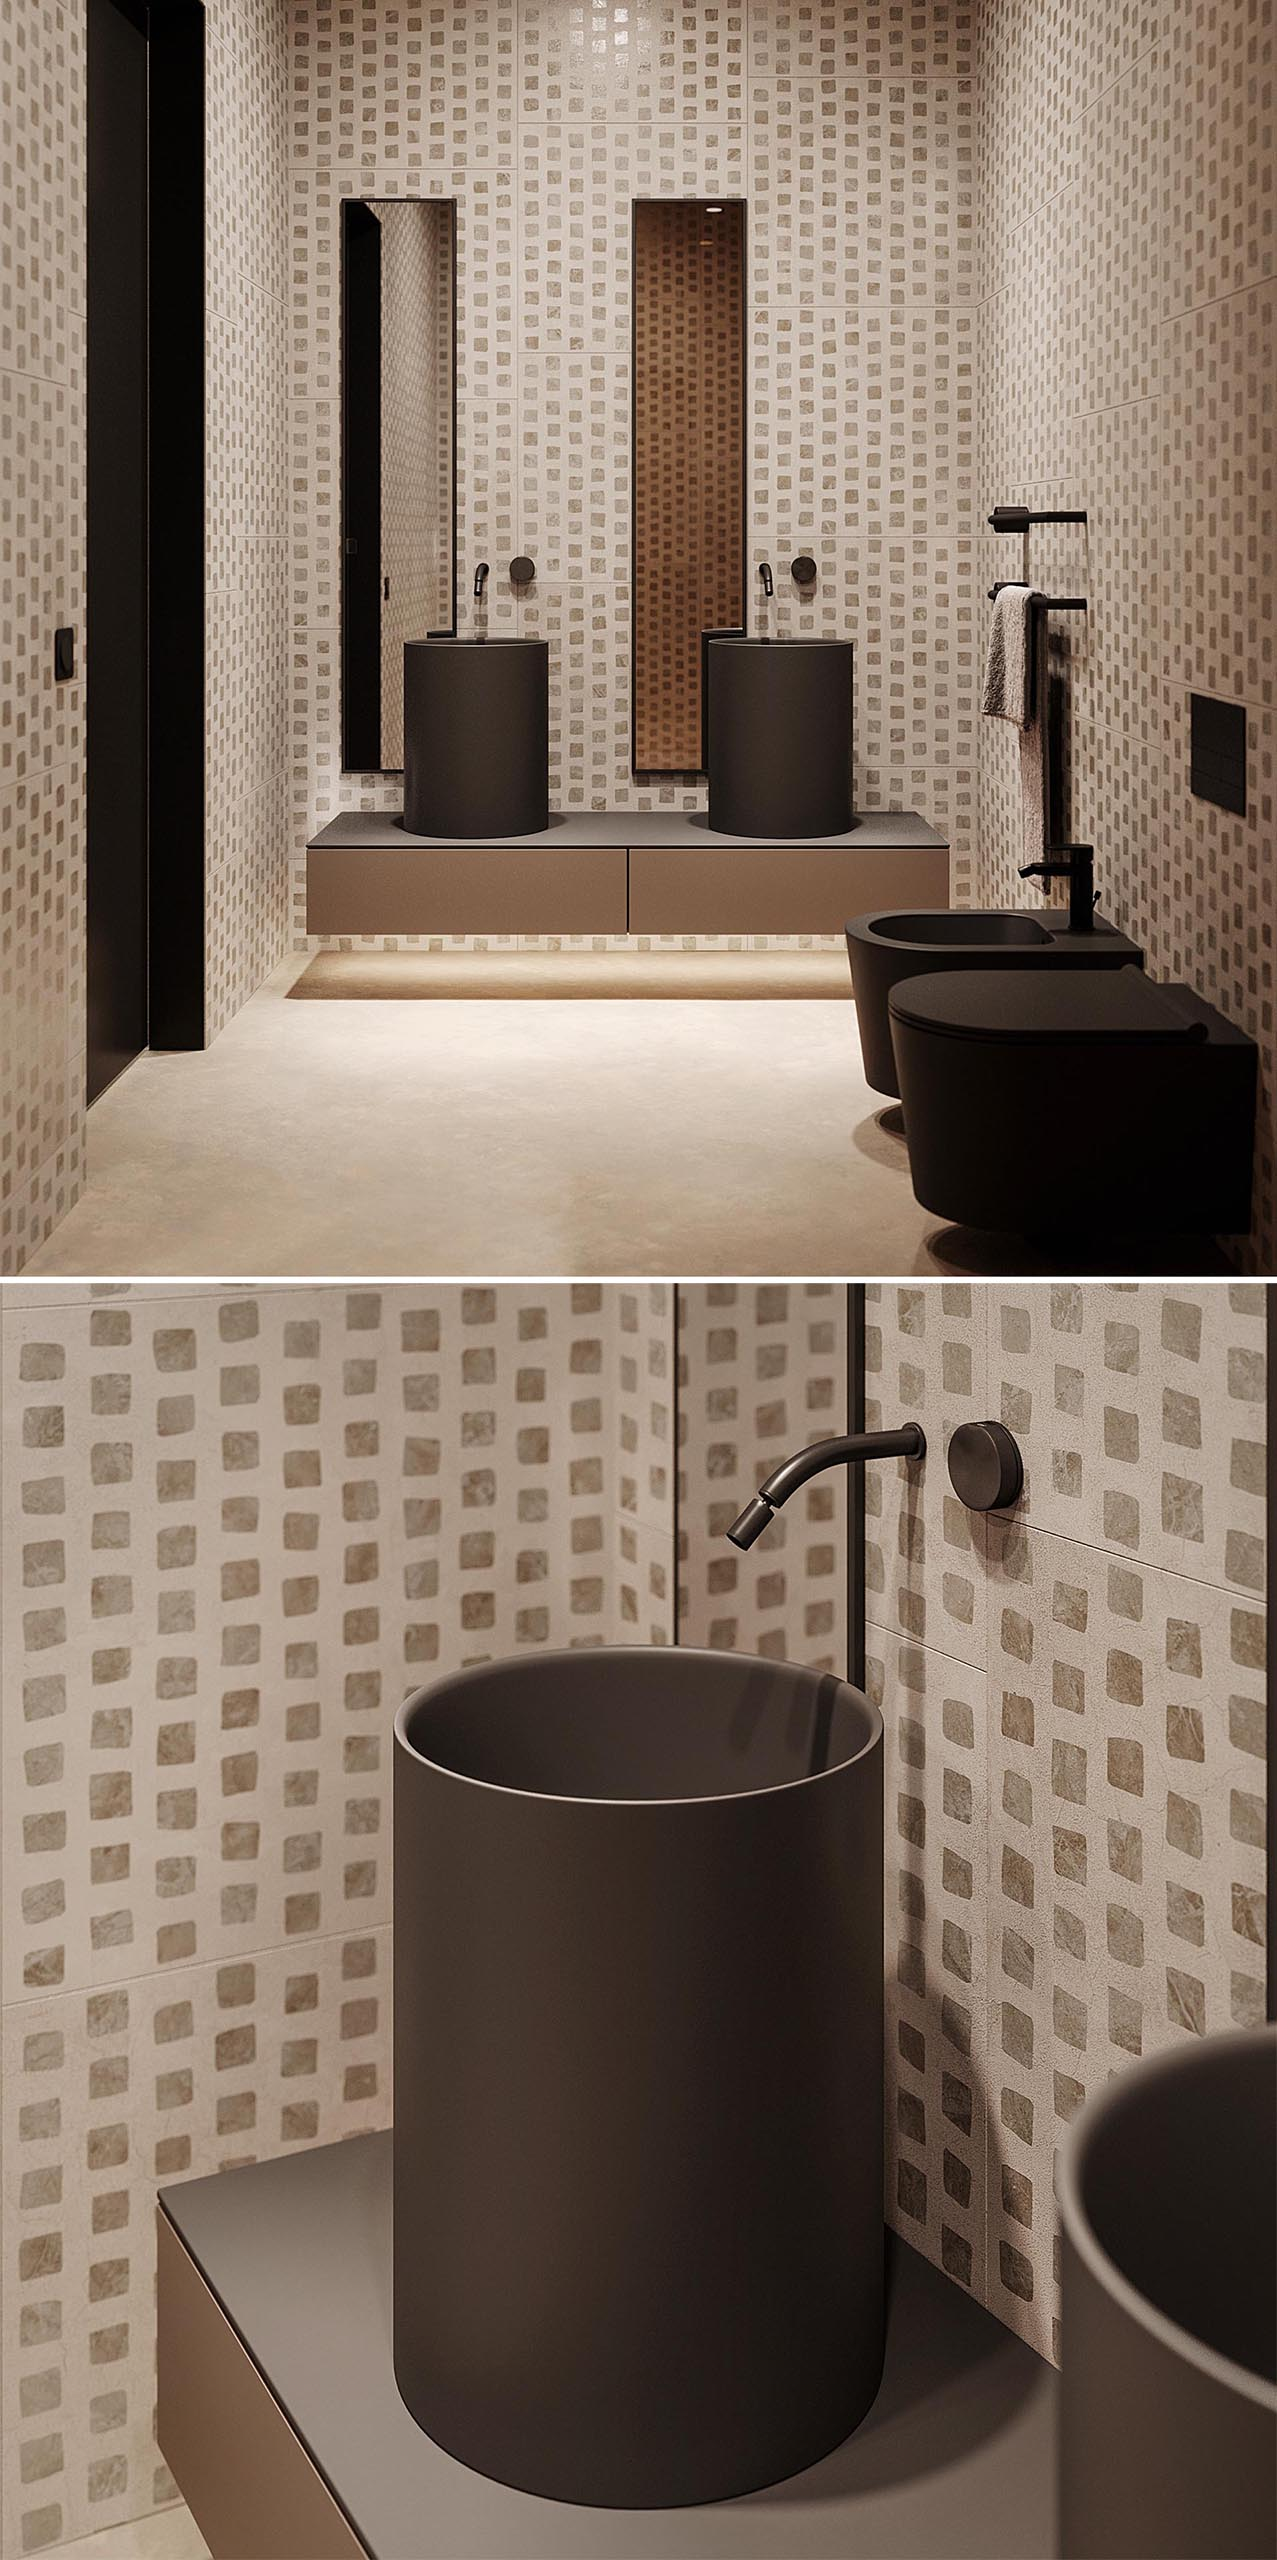 A modern bathroom with patterned walls, black accents, tall thin mirrors, and walk-in shower with tinted glass shower screen.